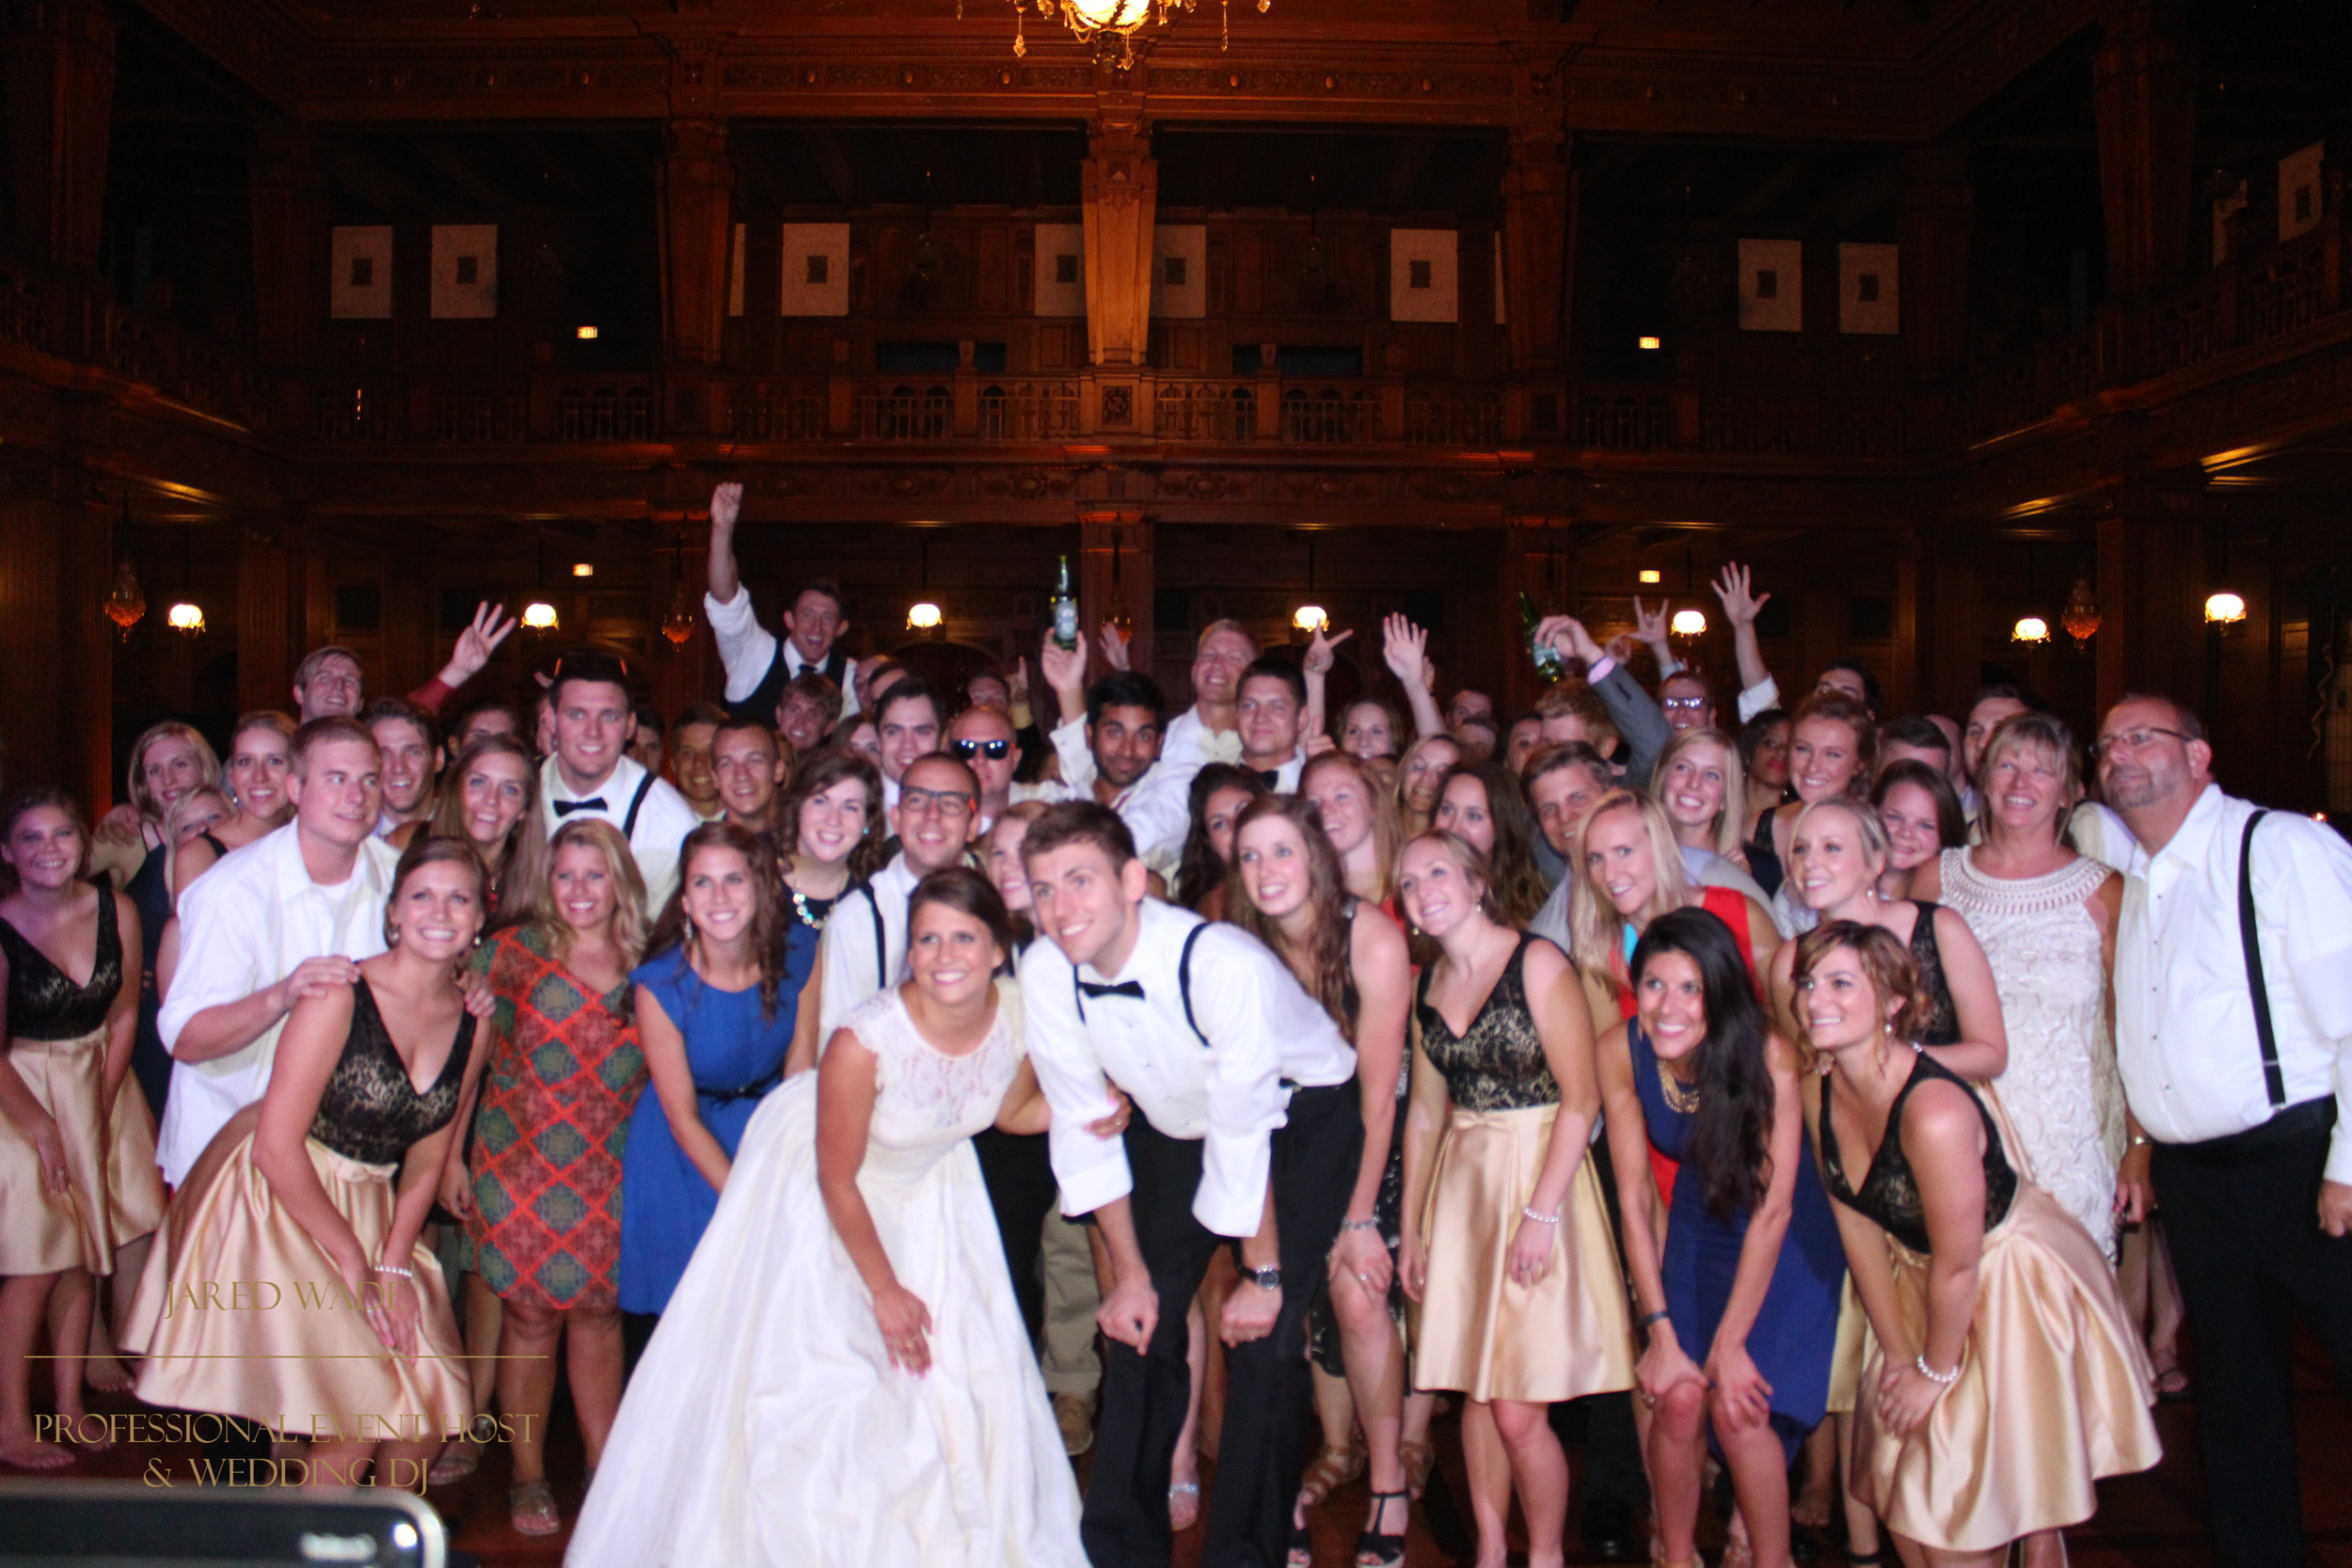 Jared Wade | Professional Event Host | Indianapolis Indiana Wedding | Scottish Rite Cathedral | Big Dance Party